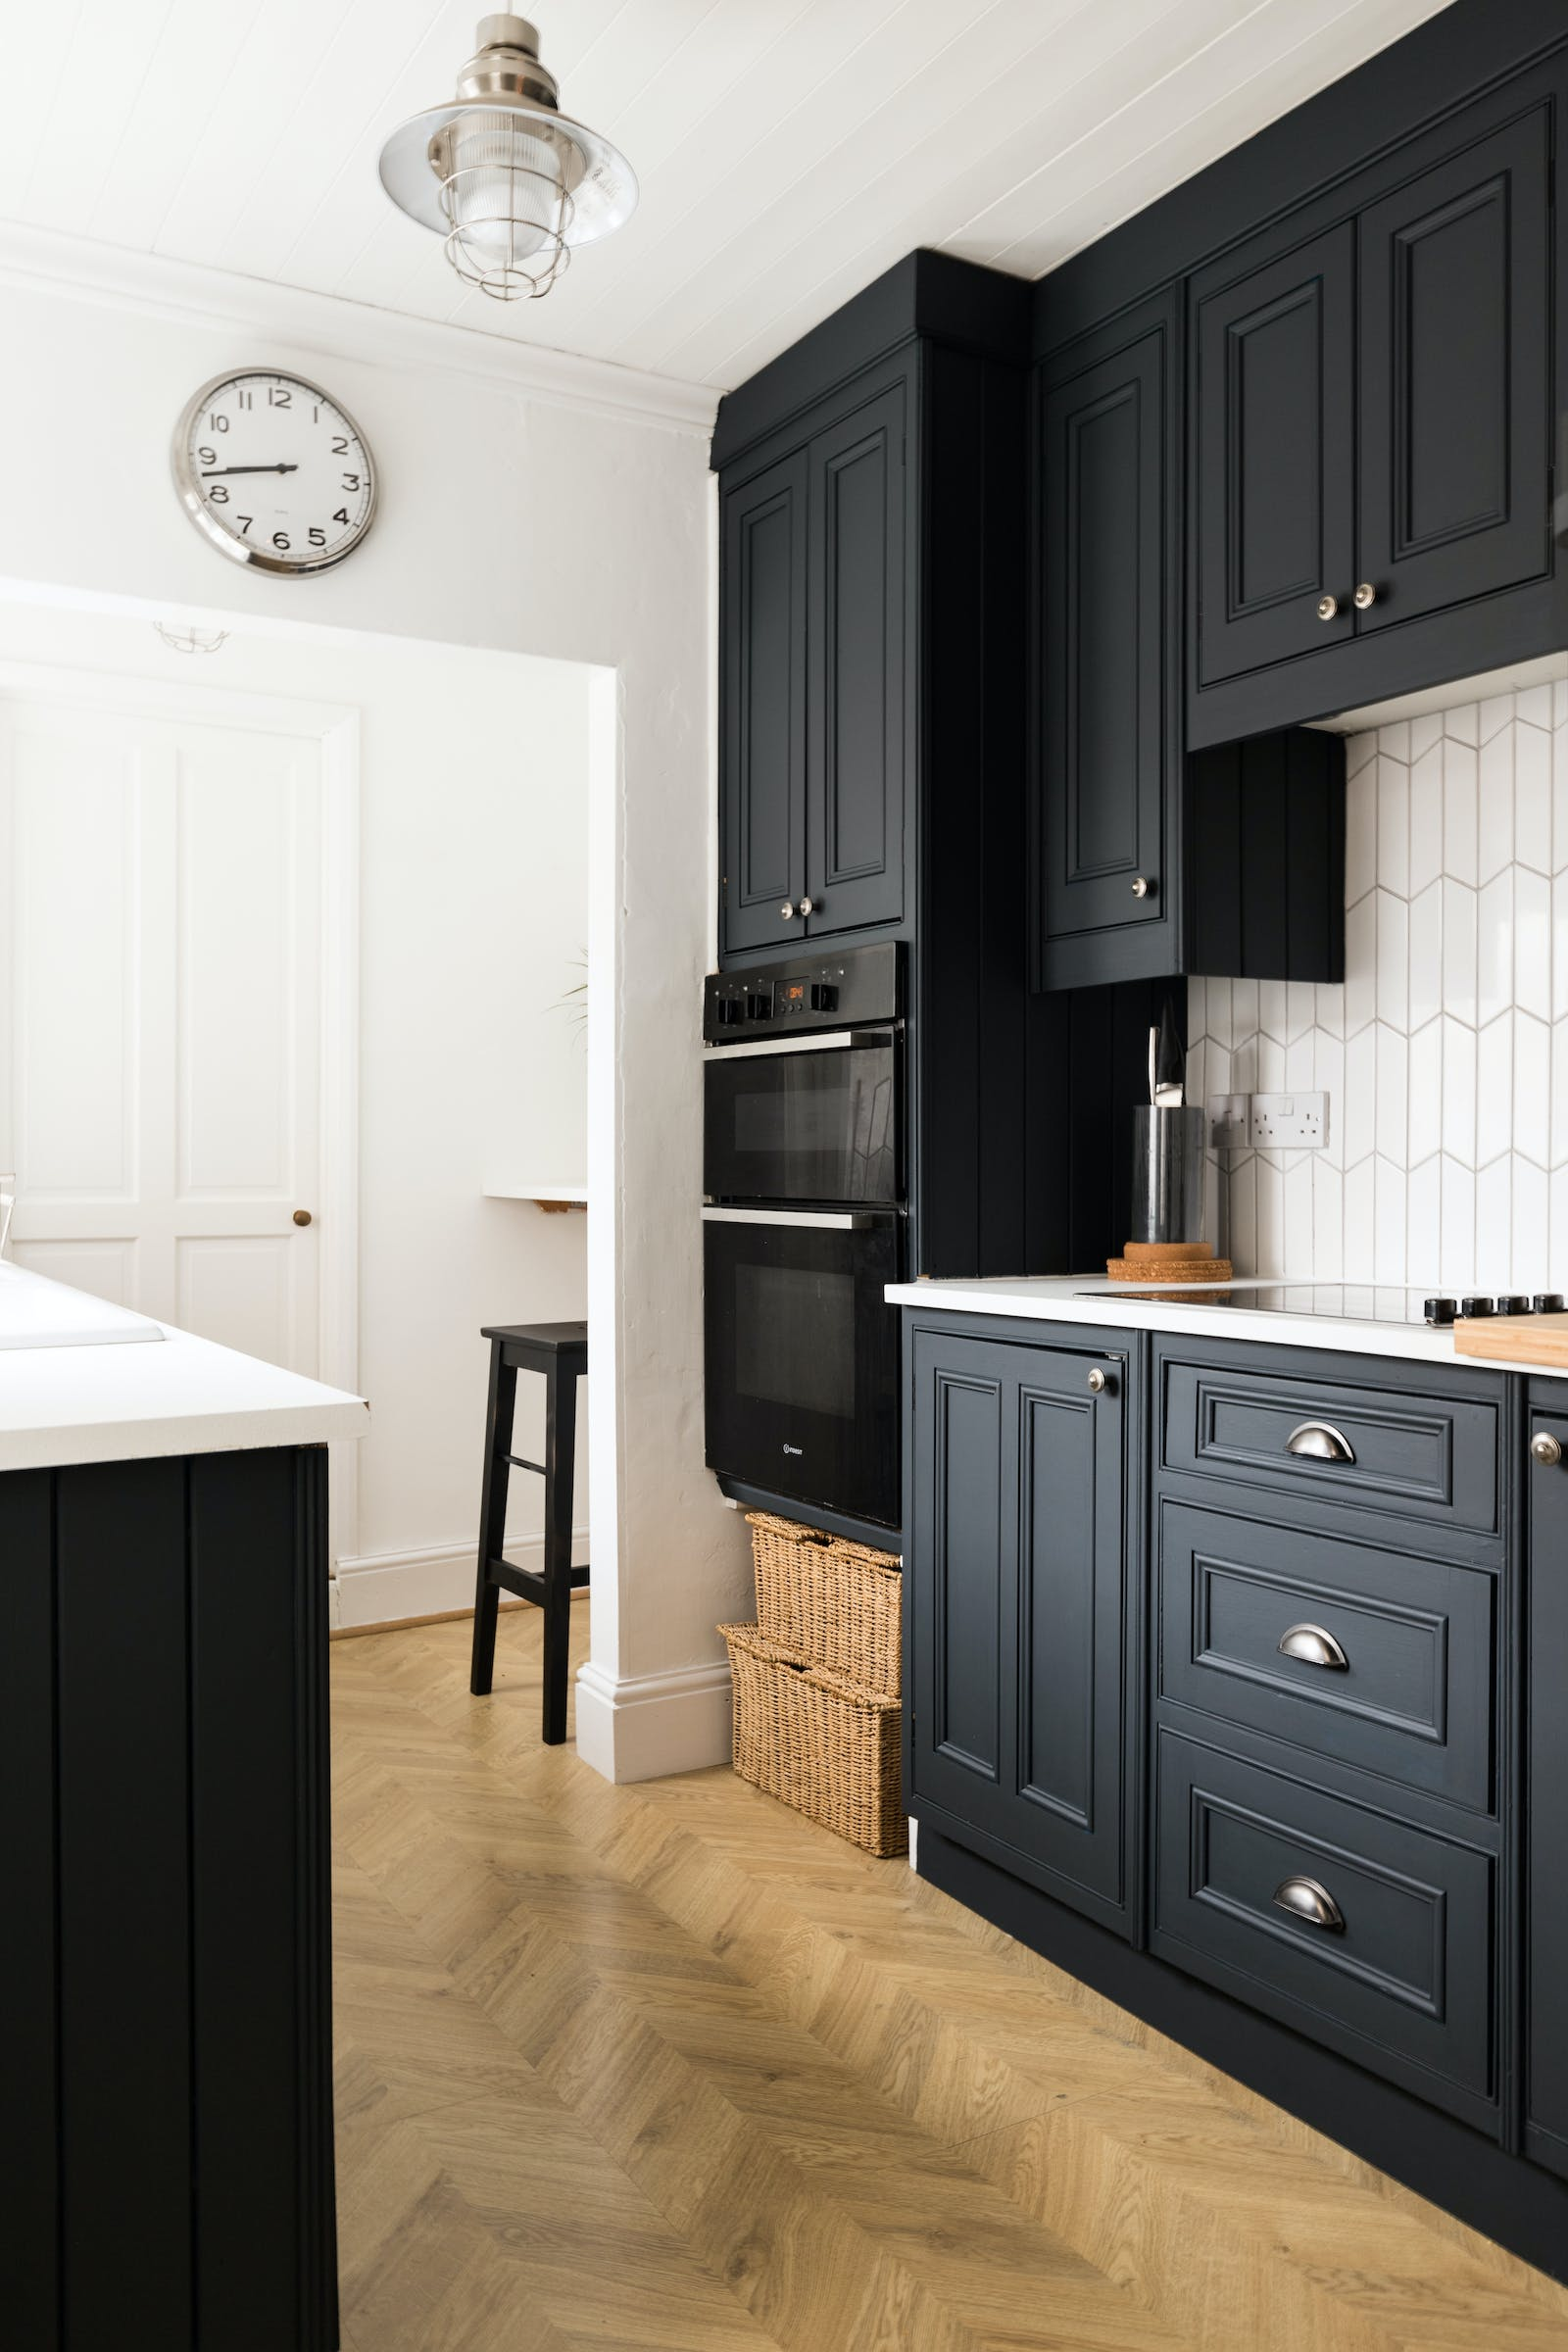 Kitchen with cabinets painted in Lick Black 01 paint